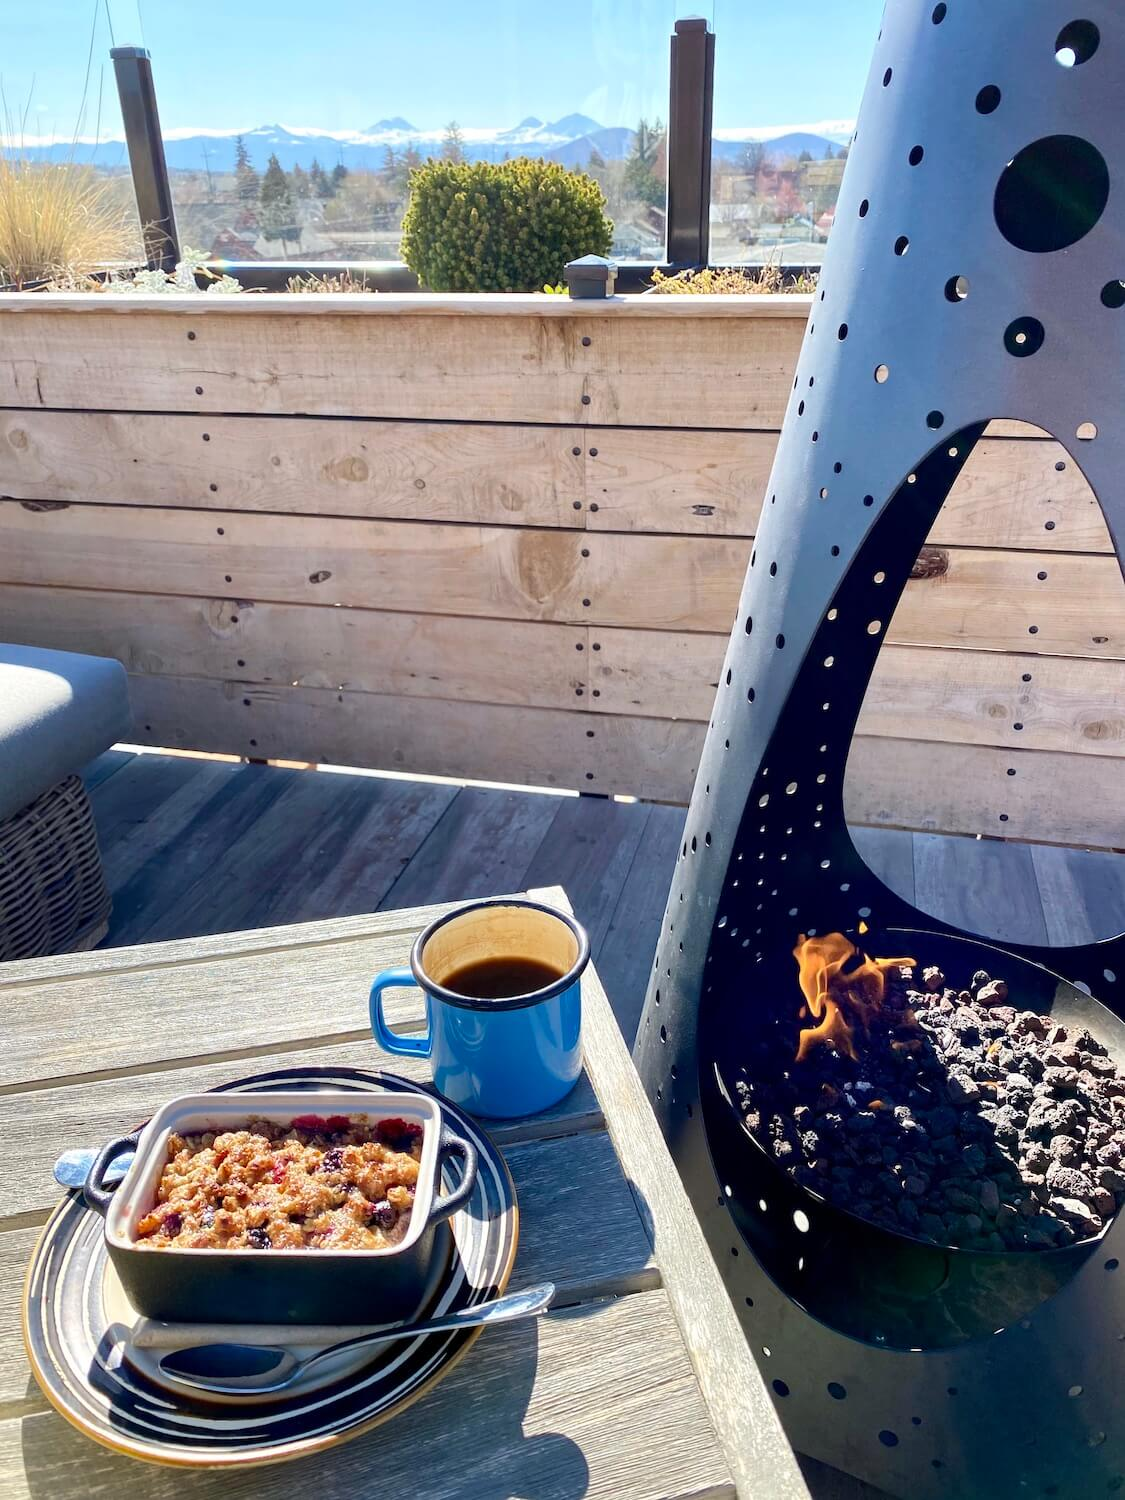 The rooftop bar of the SCP Hotel Redmond offers views of the Cascade Mountains.  On a small slatted table sits a metal cup with coffee as well as a individual sized blueberry cobbler next to an upright firepit with a few flames burning.